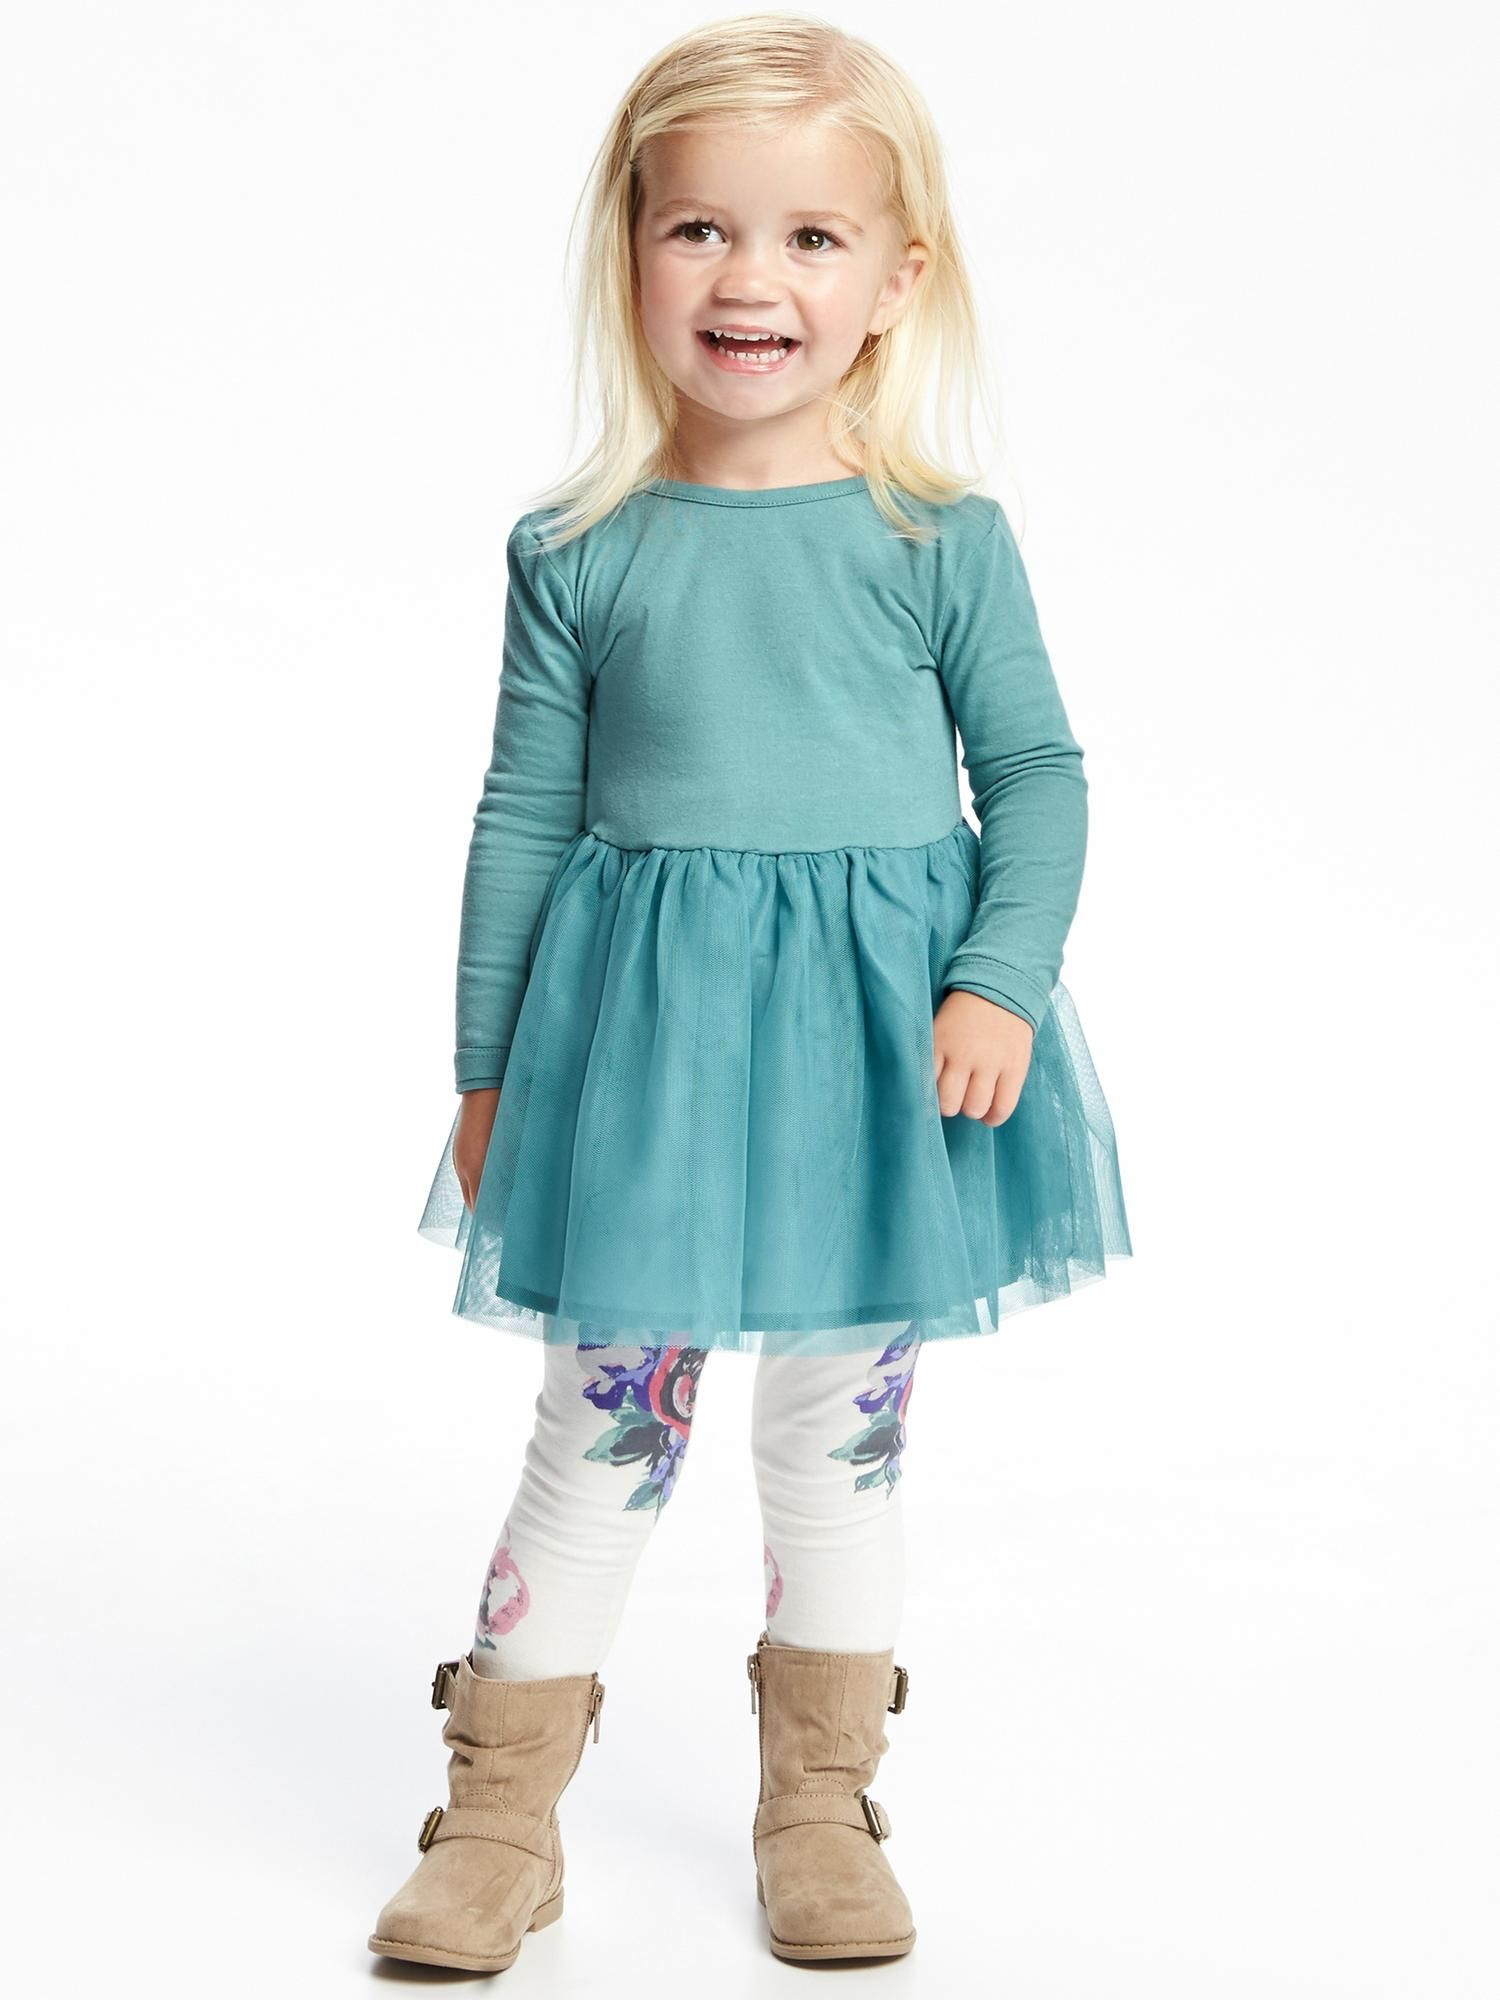 Tutu Dress for Toddler | Old Navy | Toddler fall outfits ...